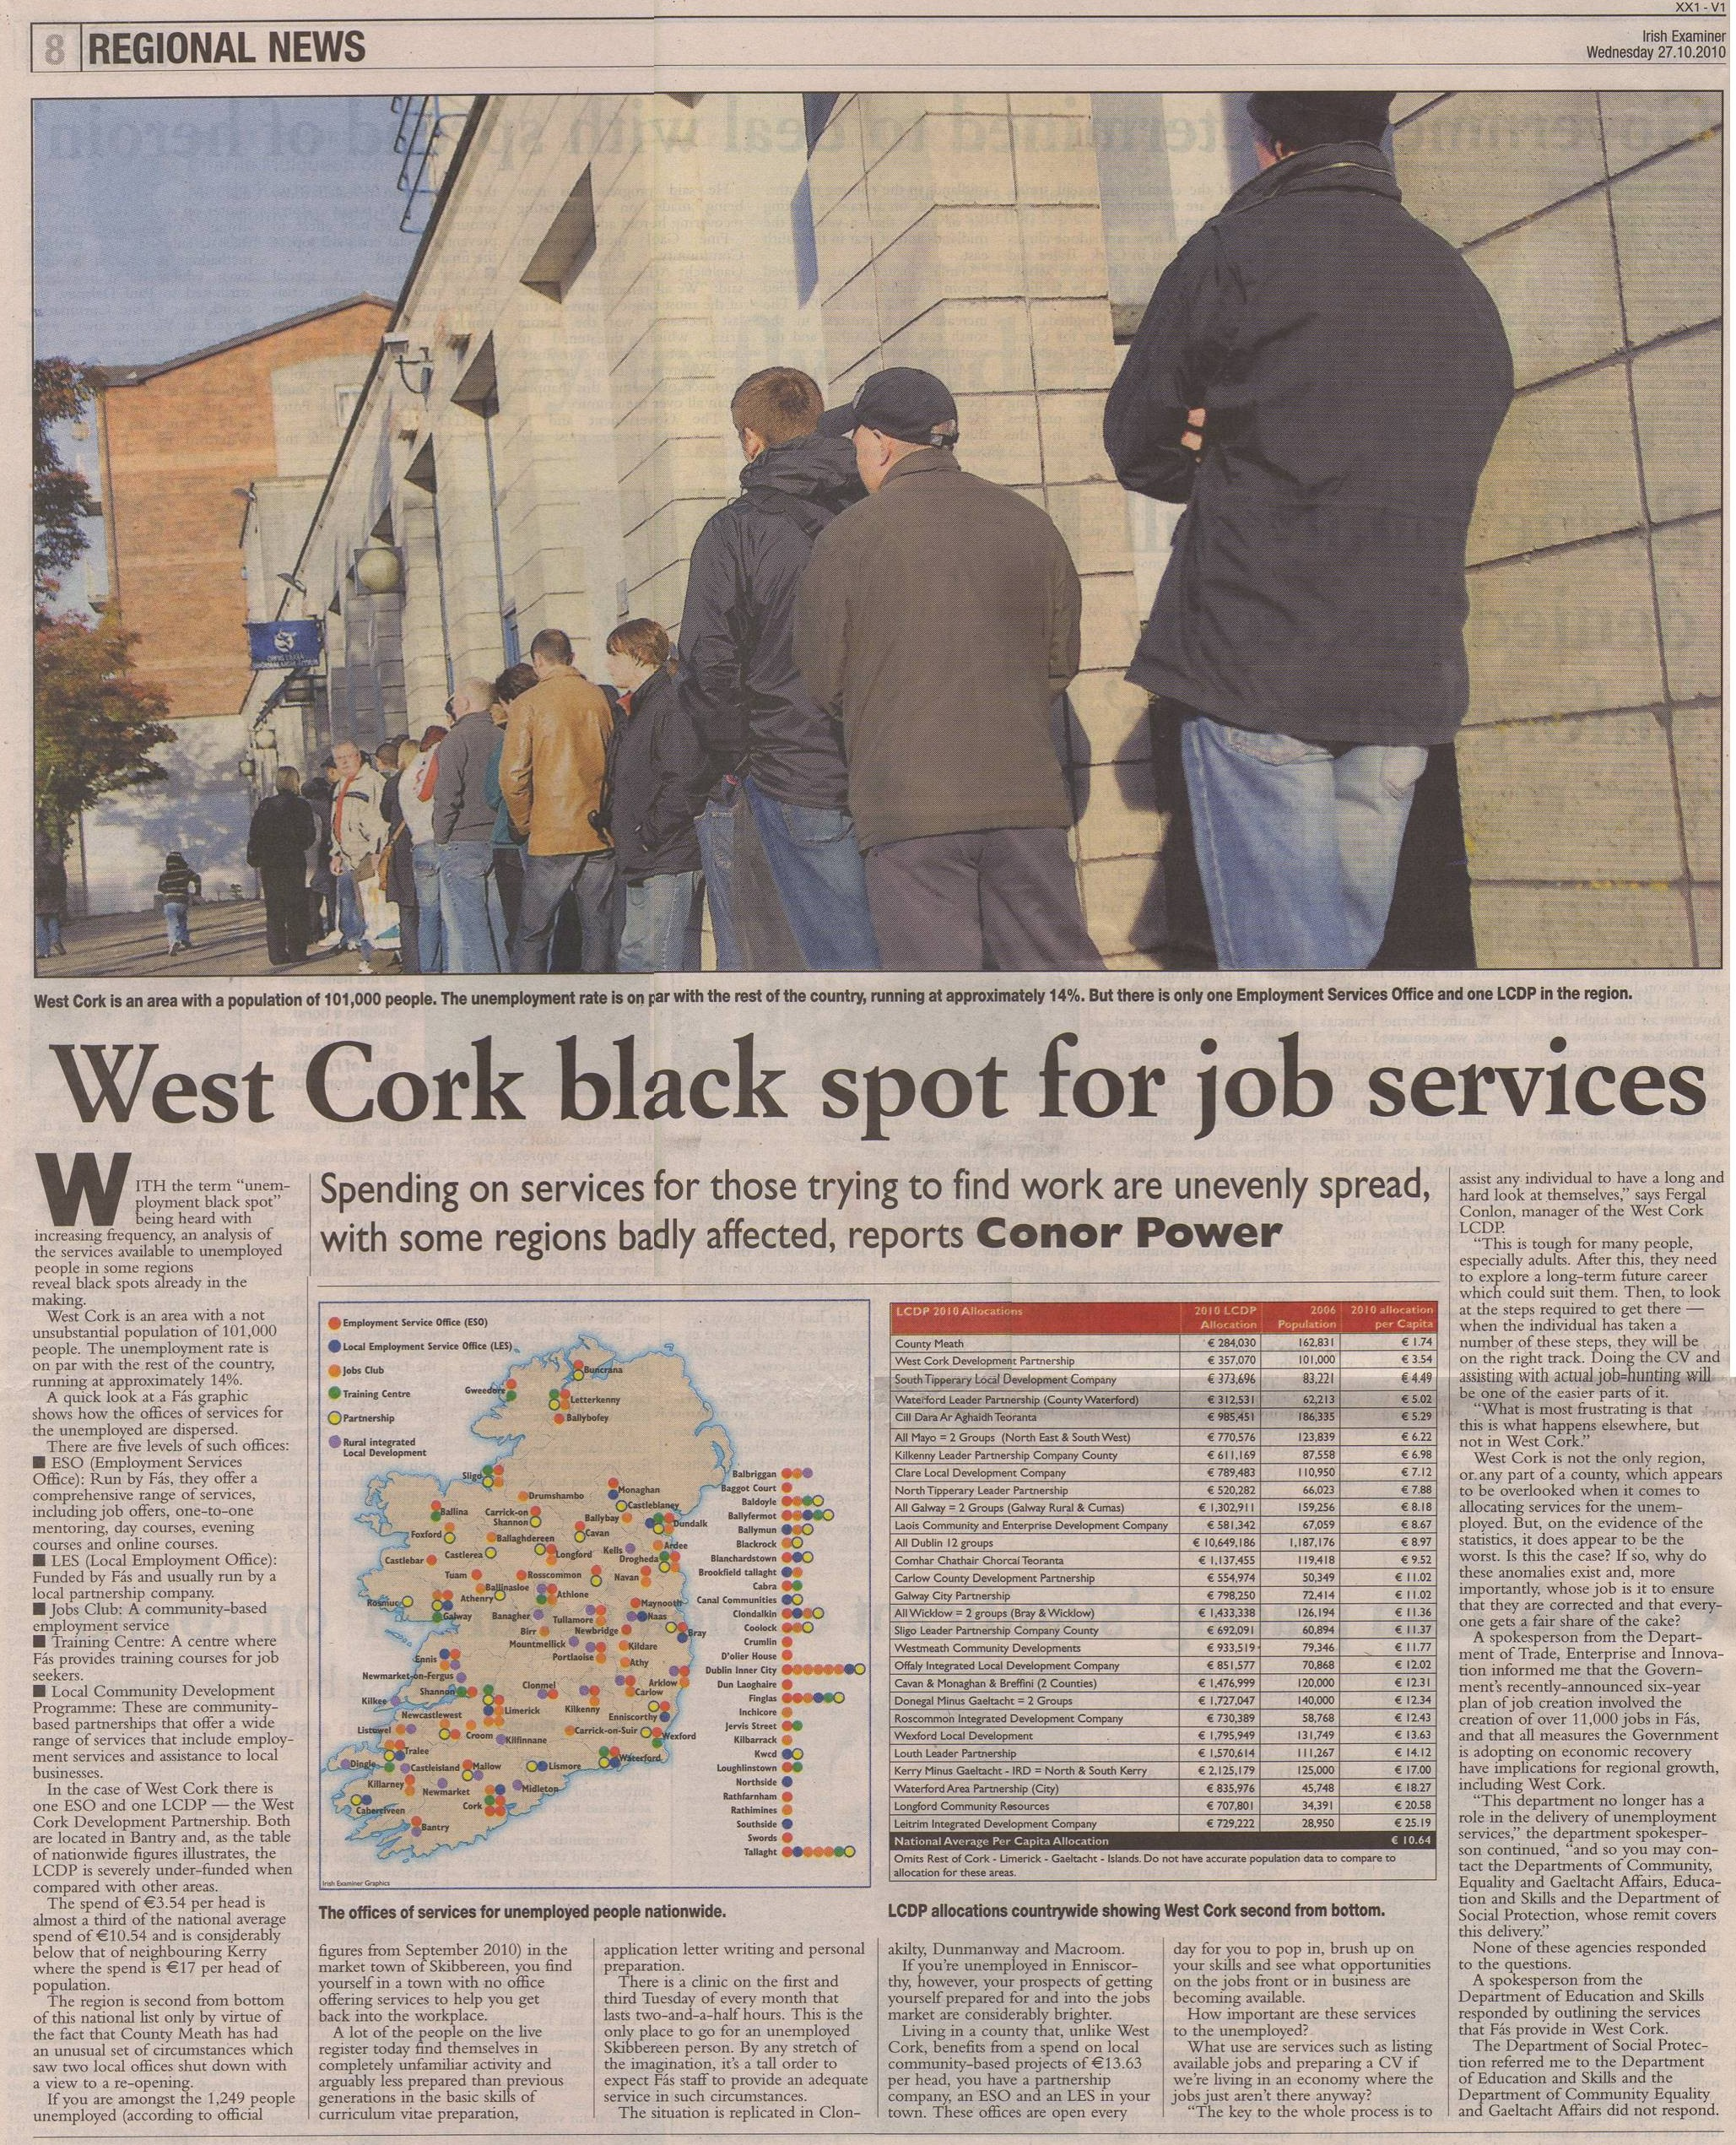 Lack of Services for Unemployed